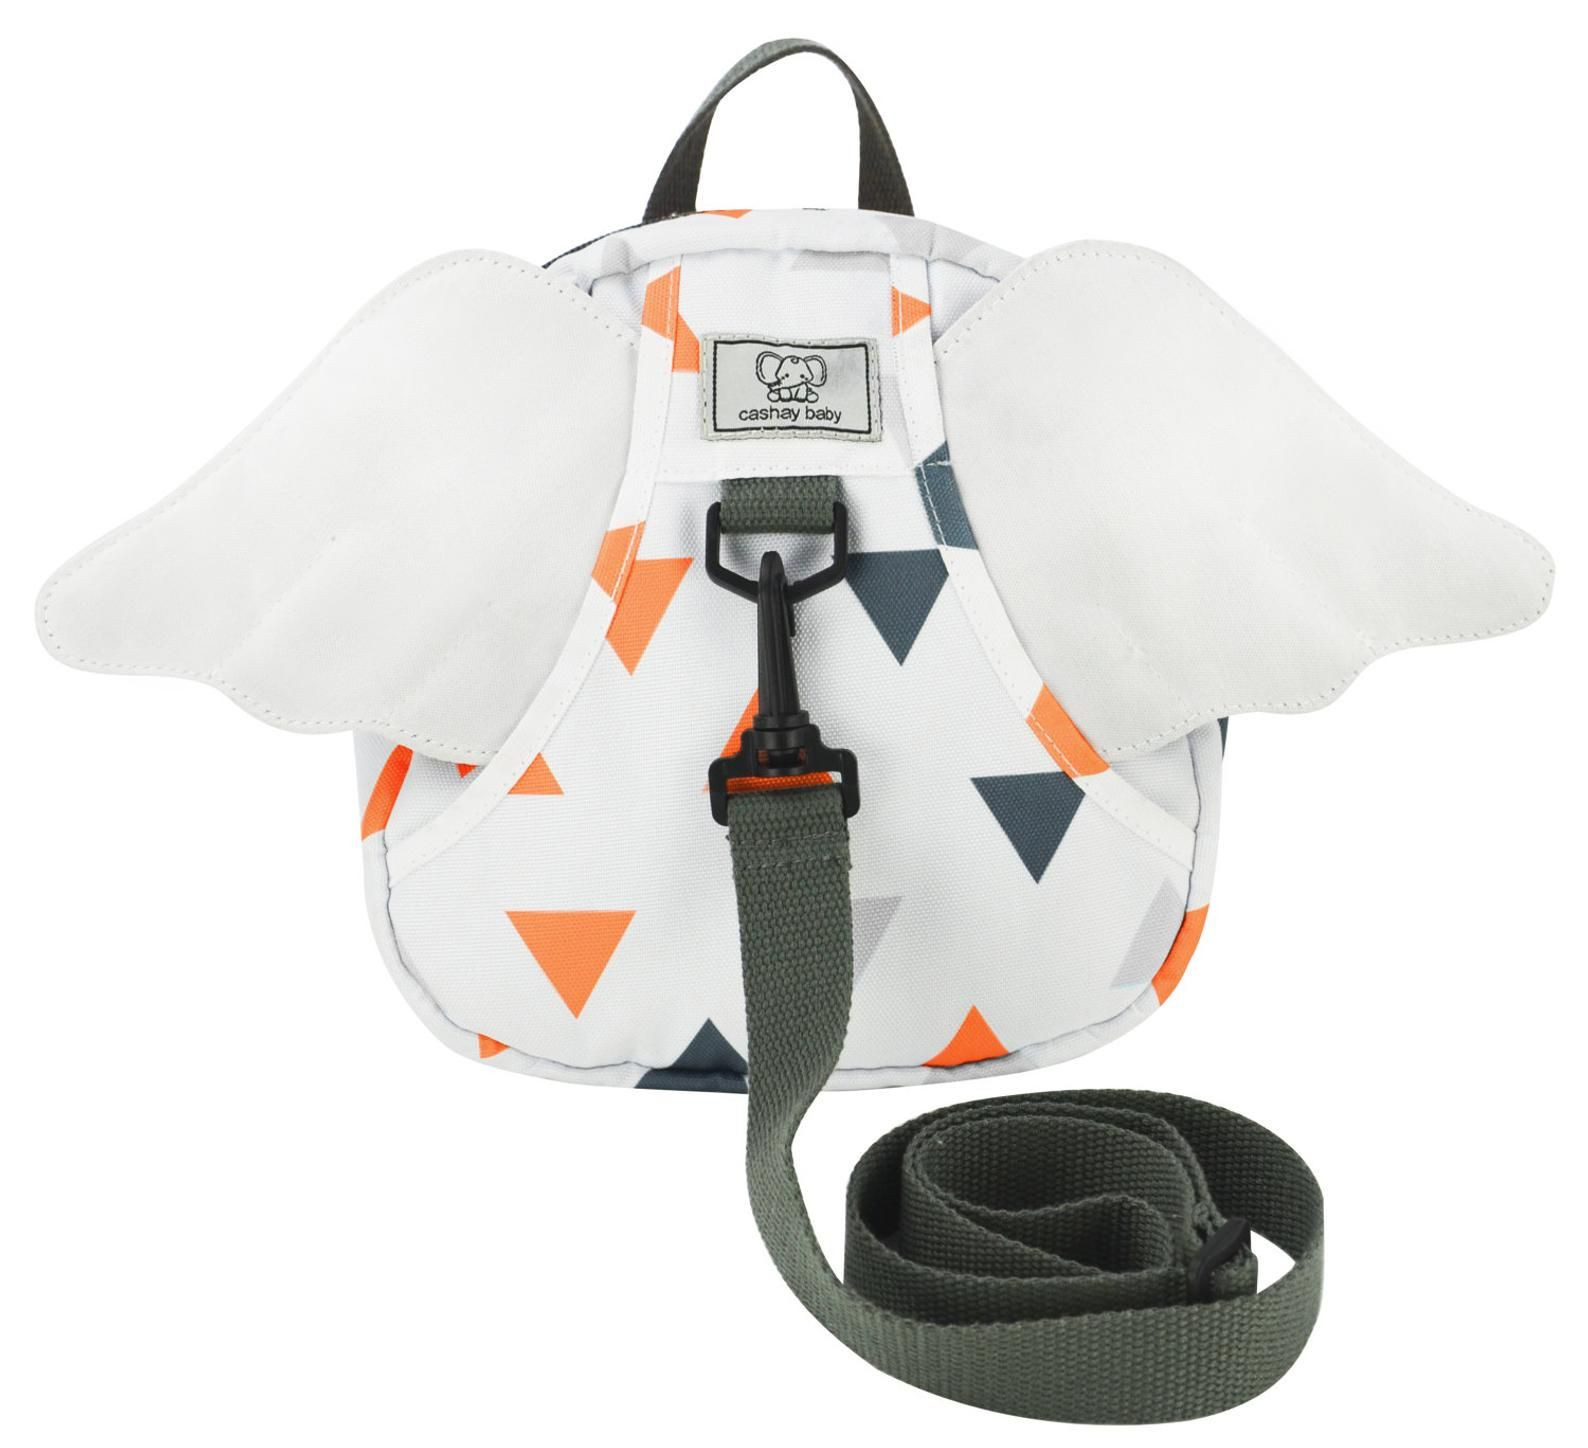 Cashay baby little angel toddler safety harness backpack